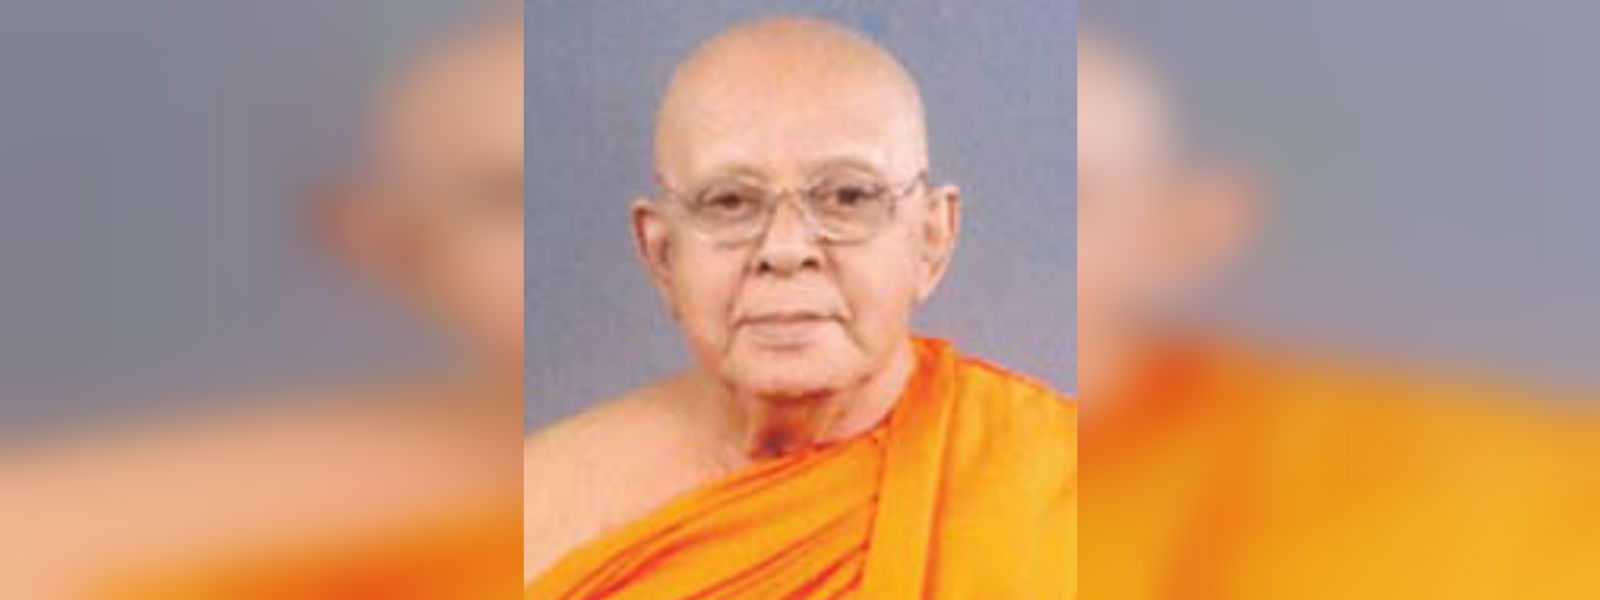 Final rites of Ven. Pallaththara Sumanajothi Thero on Wednesday